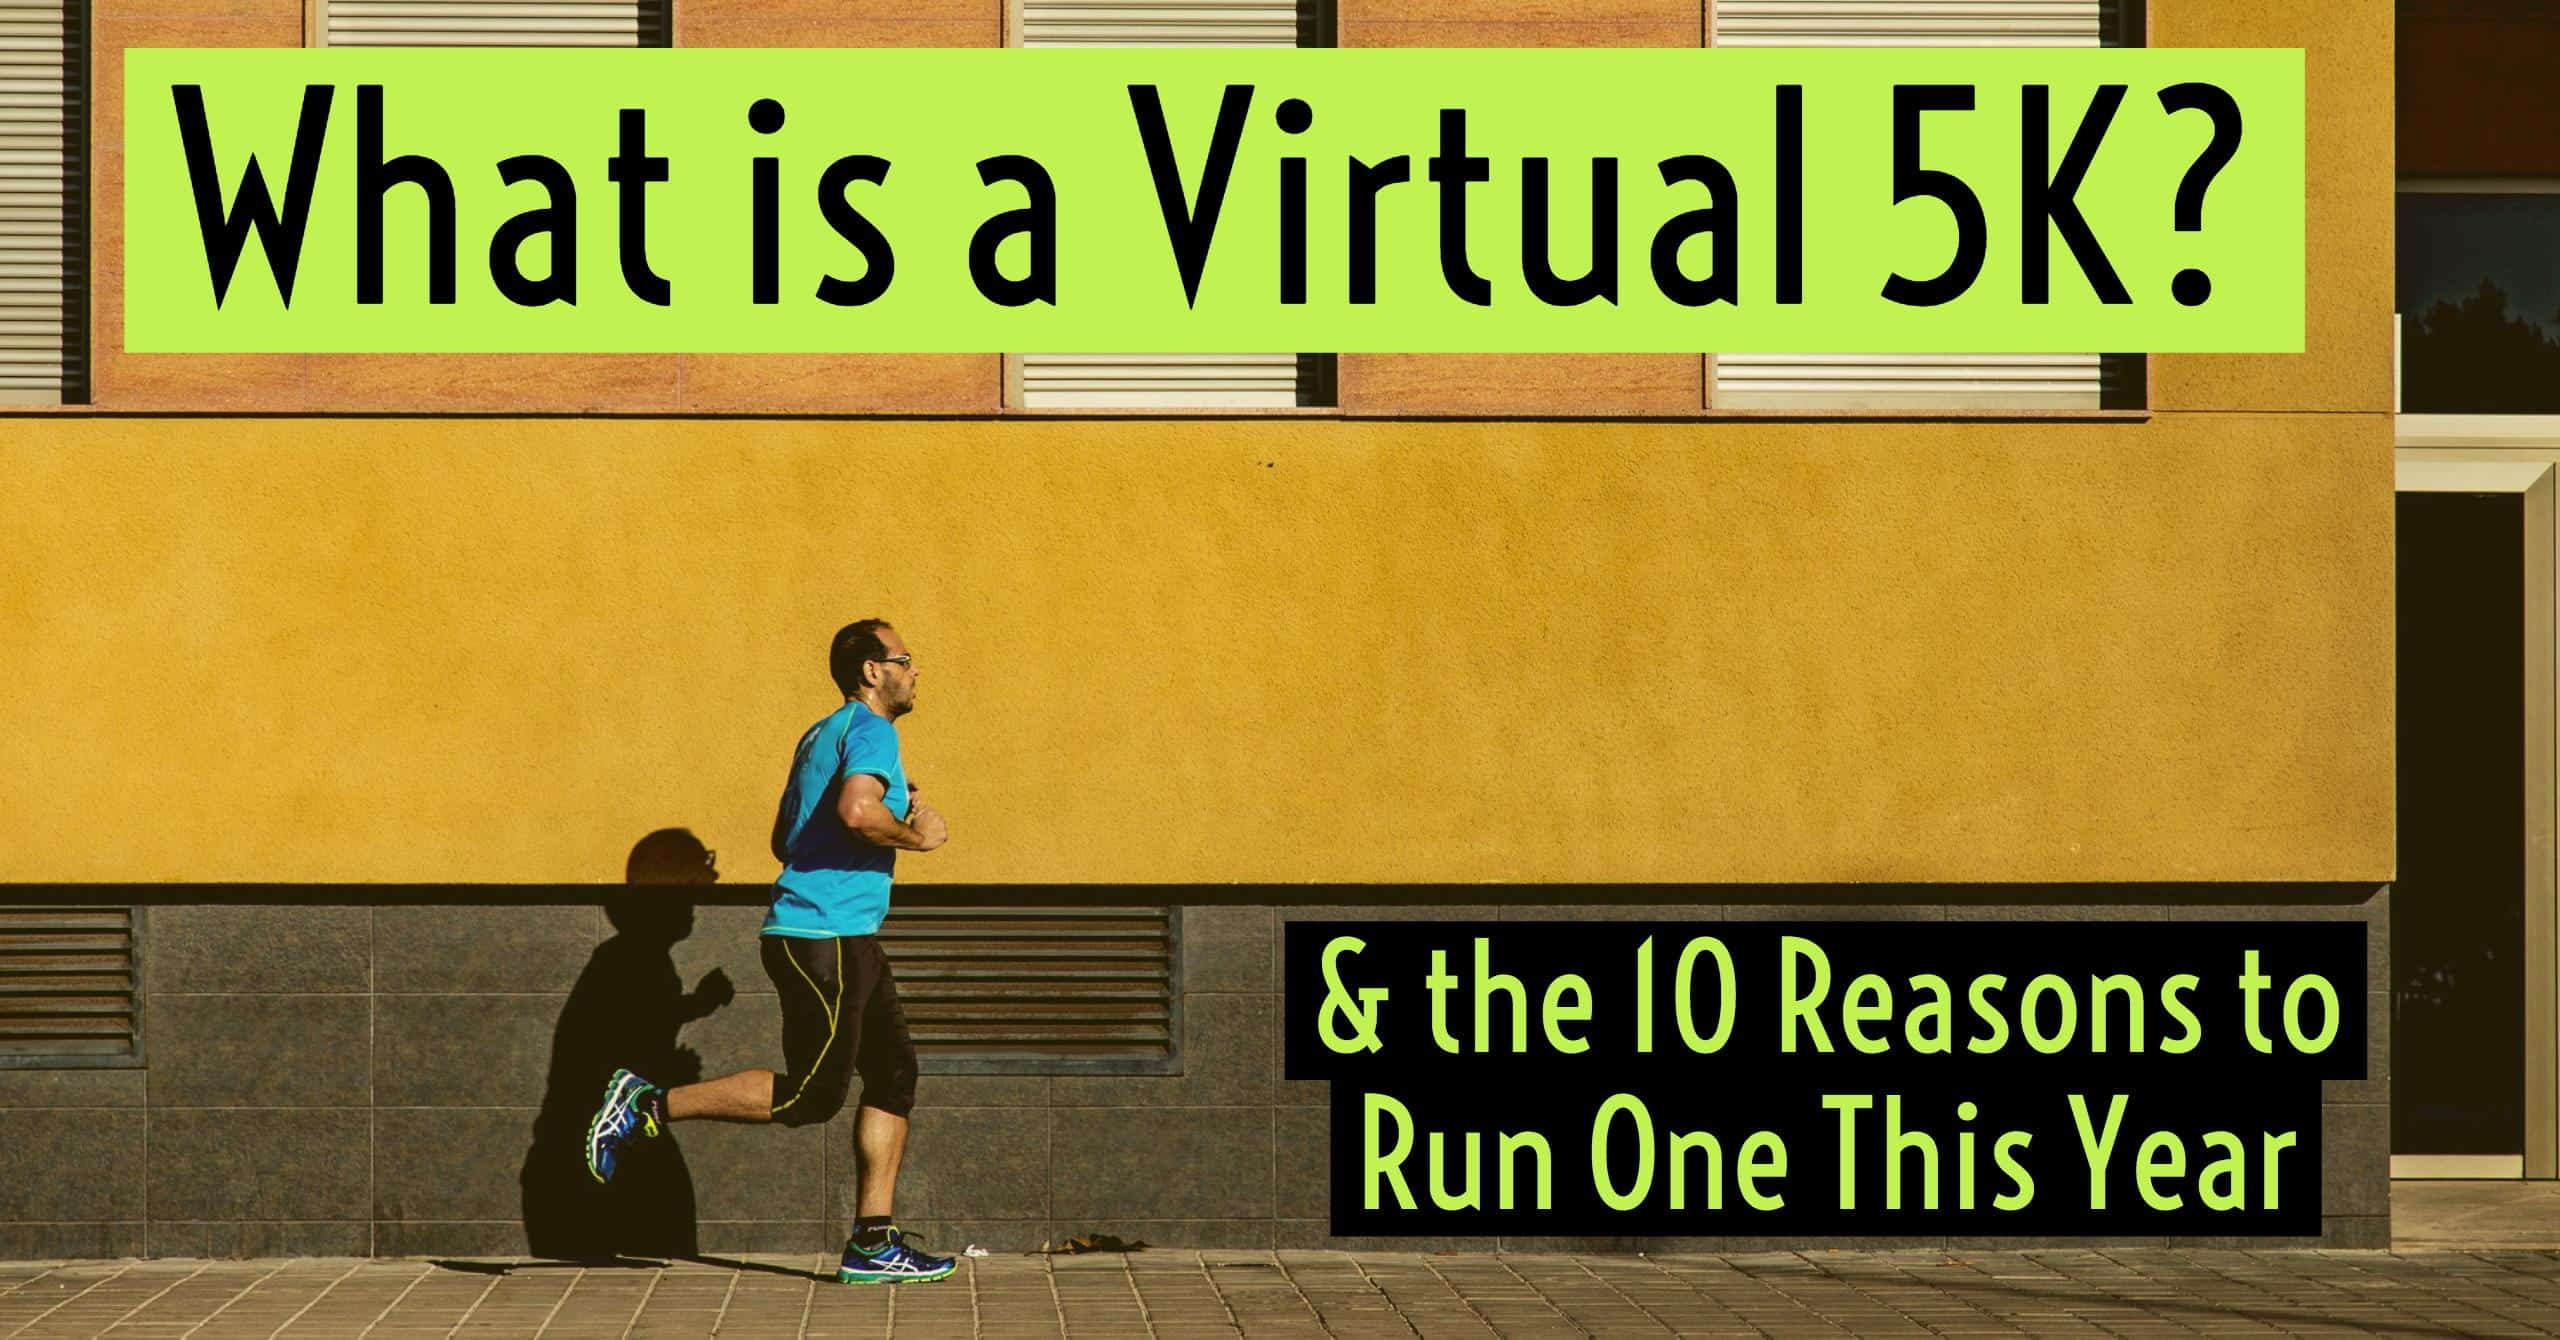 What is a virtual 5k? We break down what it is and the top 10 reasons why you should run one this year.